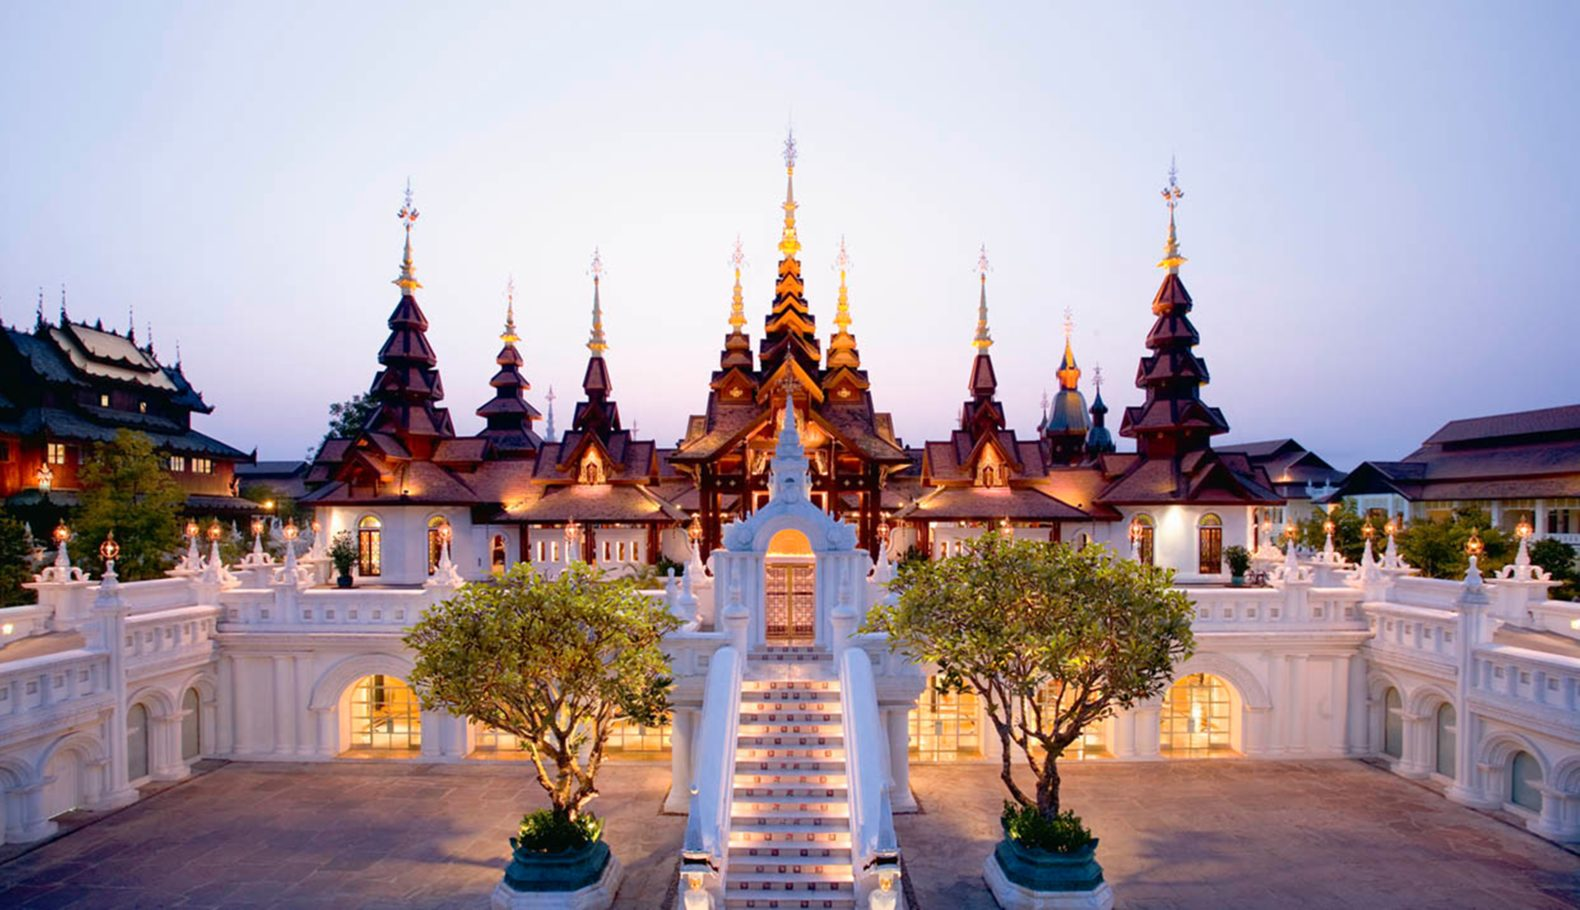 main-lobby-entrance-traditional-towers-impressive-dhara-dhevi-chiang-mai-thailand-asia